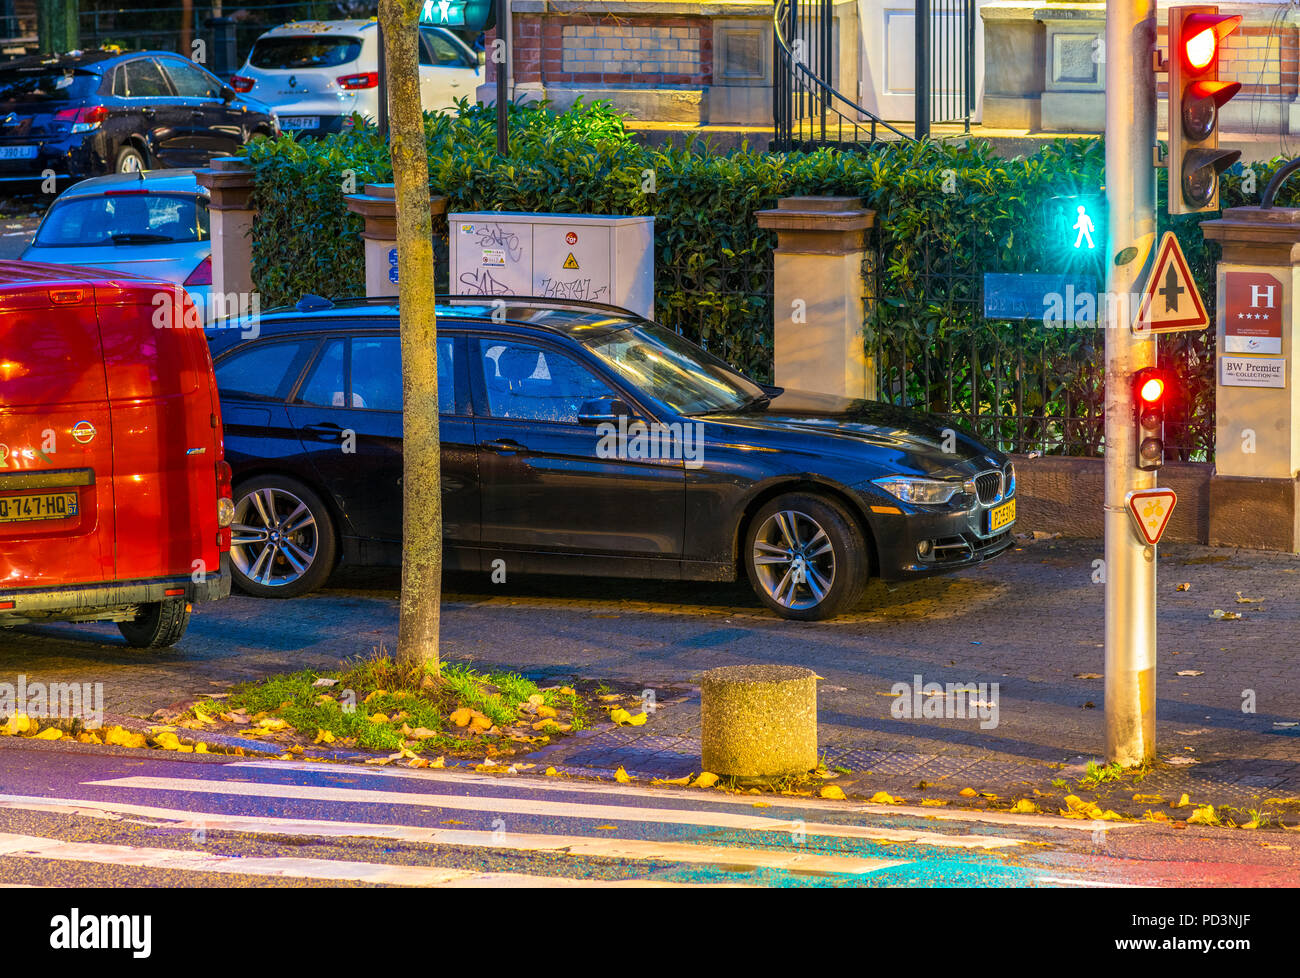 Cars parked on pavement at night, pedestrian crossing, traffic lights, Strasbourg, Alsace, France, Europe, - Stock Image